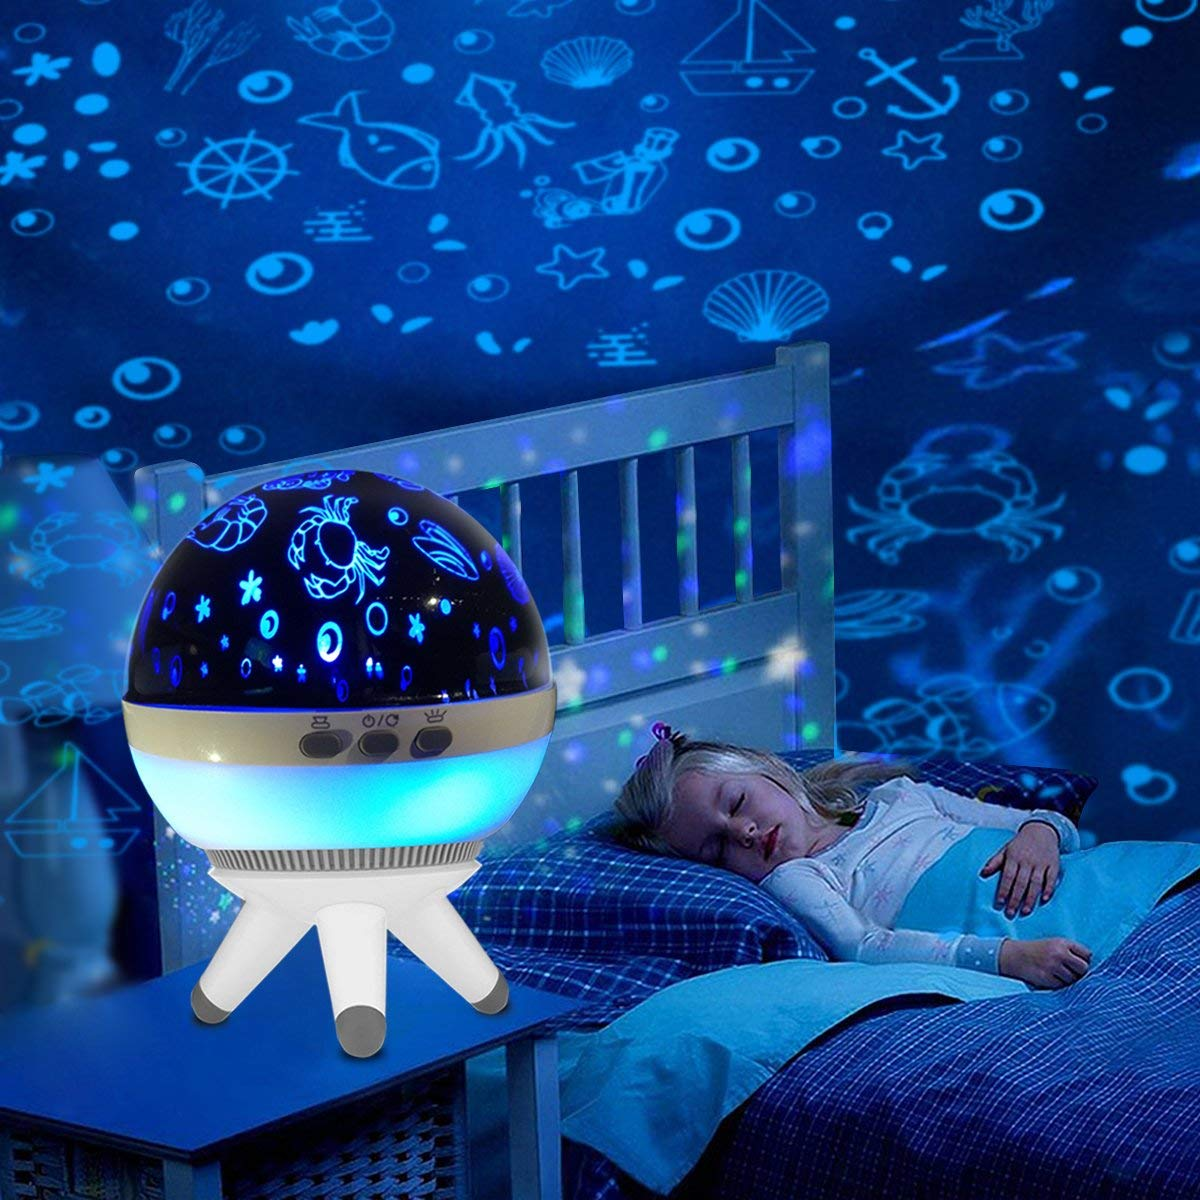 Cheap Night Lamp For Children Find Night Lamp For Children Deals On Line At Alibaba Com